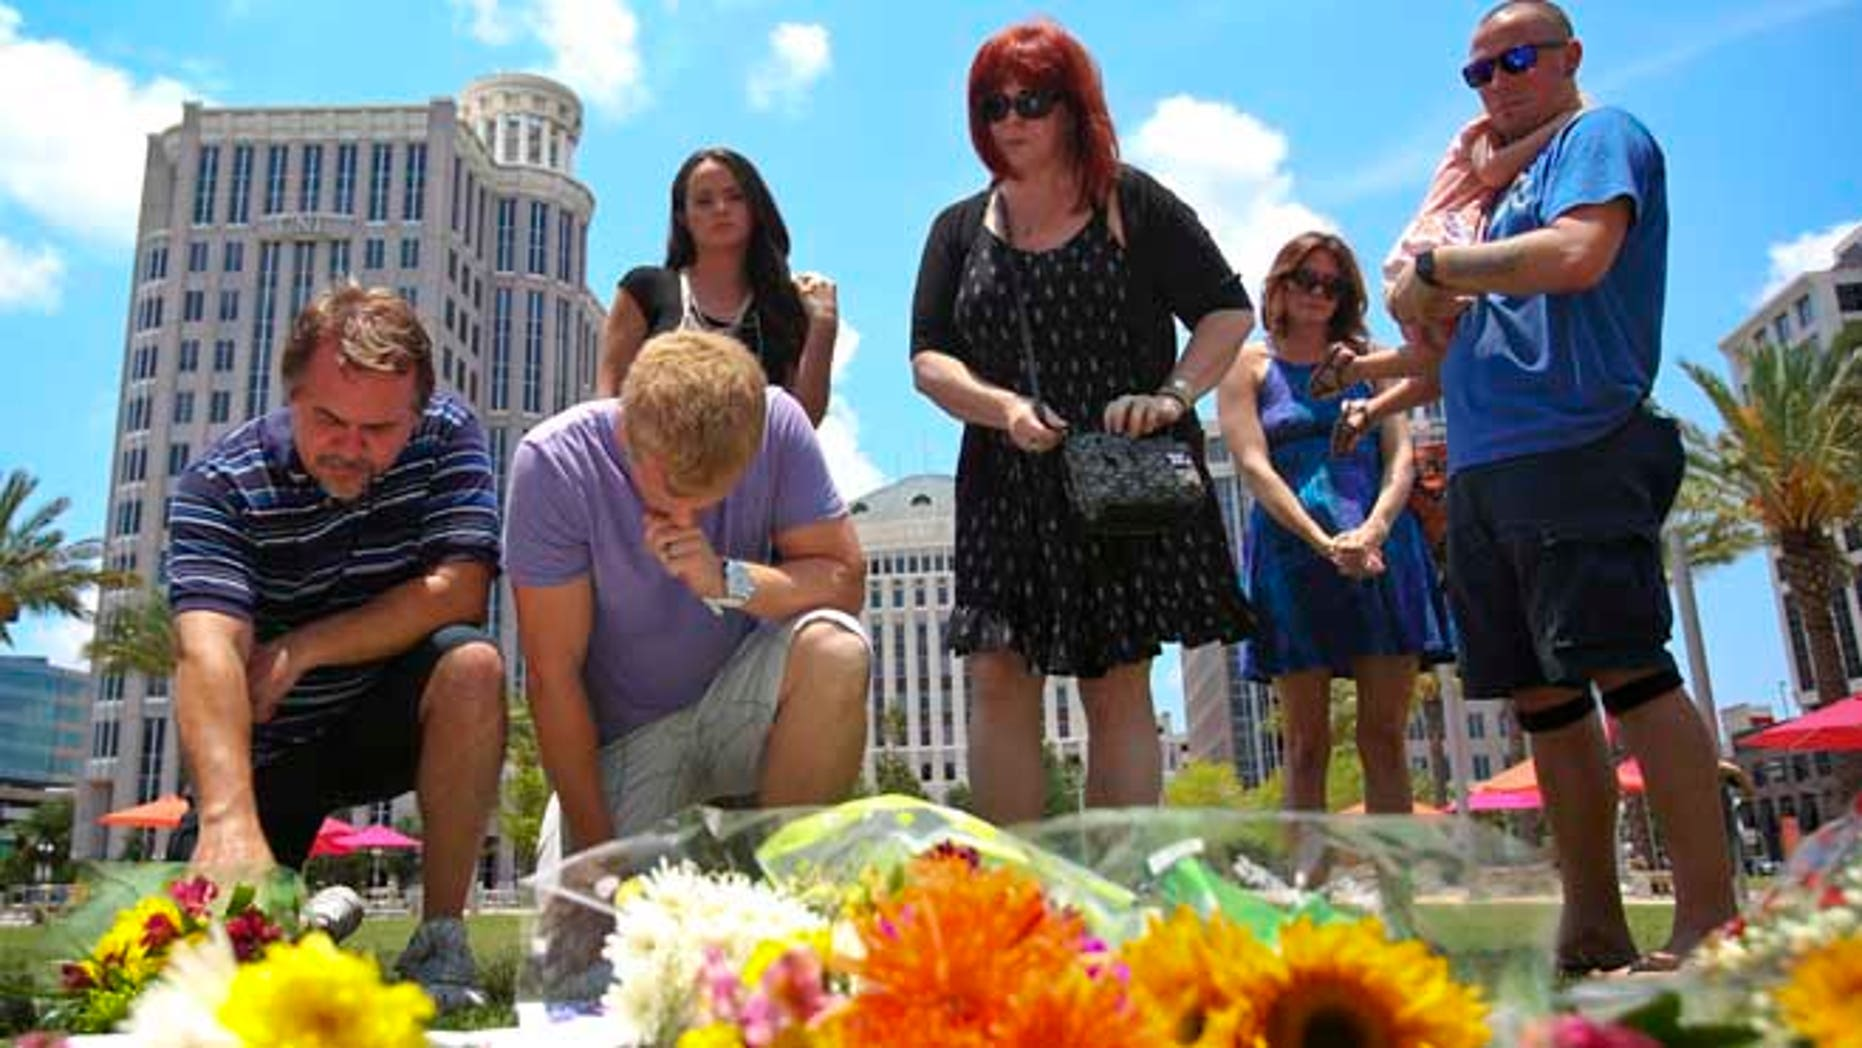 Mourners at a makeshift memorial for the victims of the Pulse nightclub shooting outside of the Dr. Phillips Performing Arts Center on Monday , June 13, 2016.